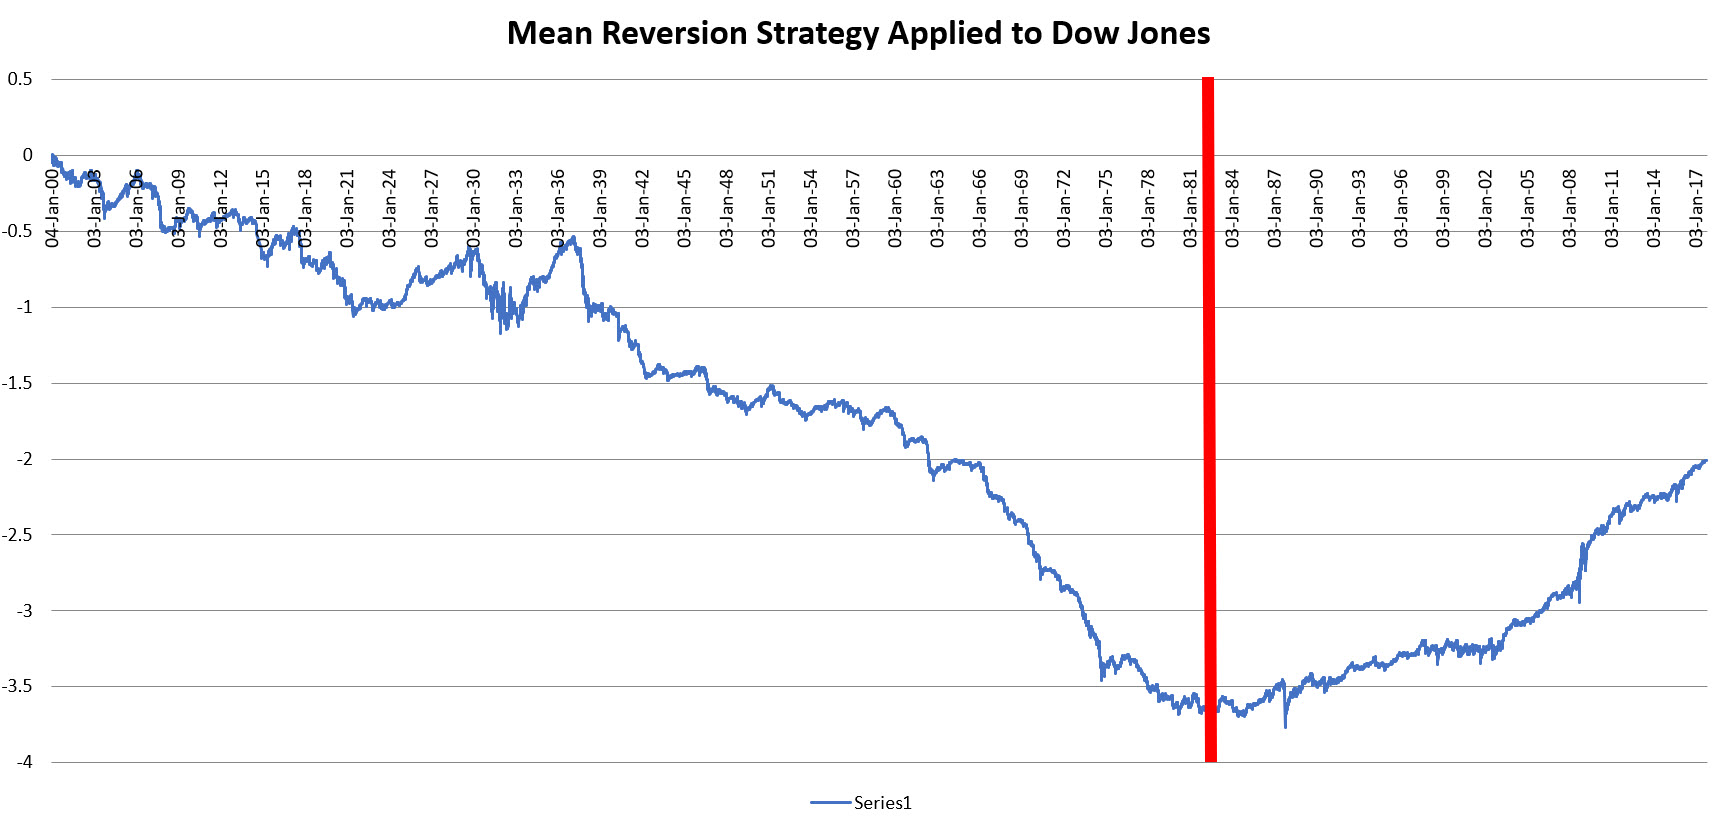 Mean Reversion Strategy Applied to Dow Jones